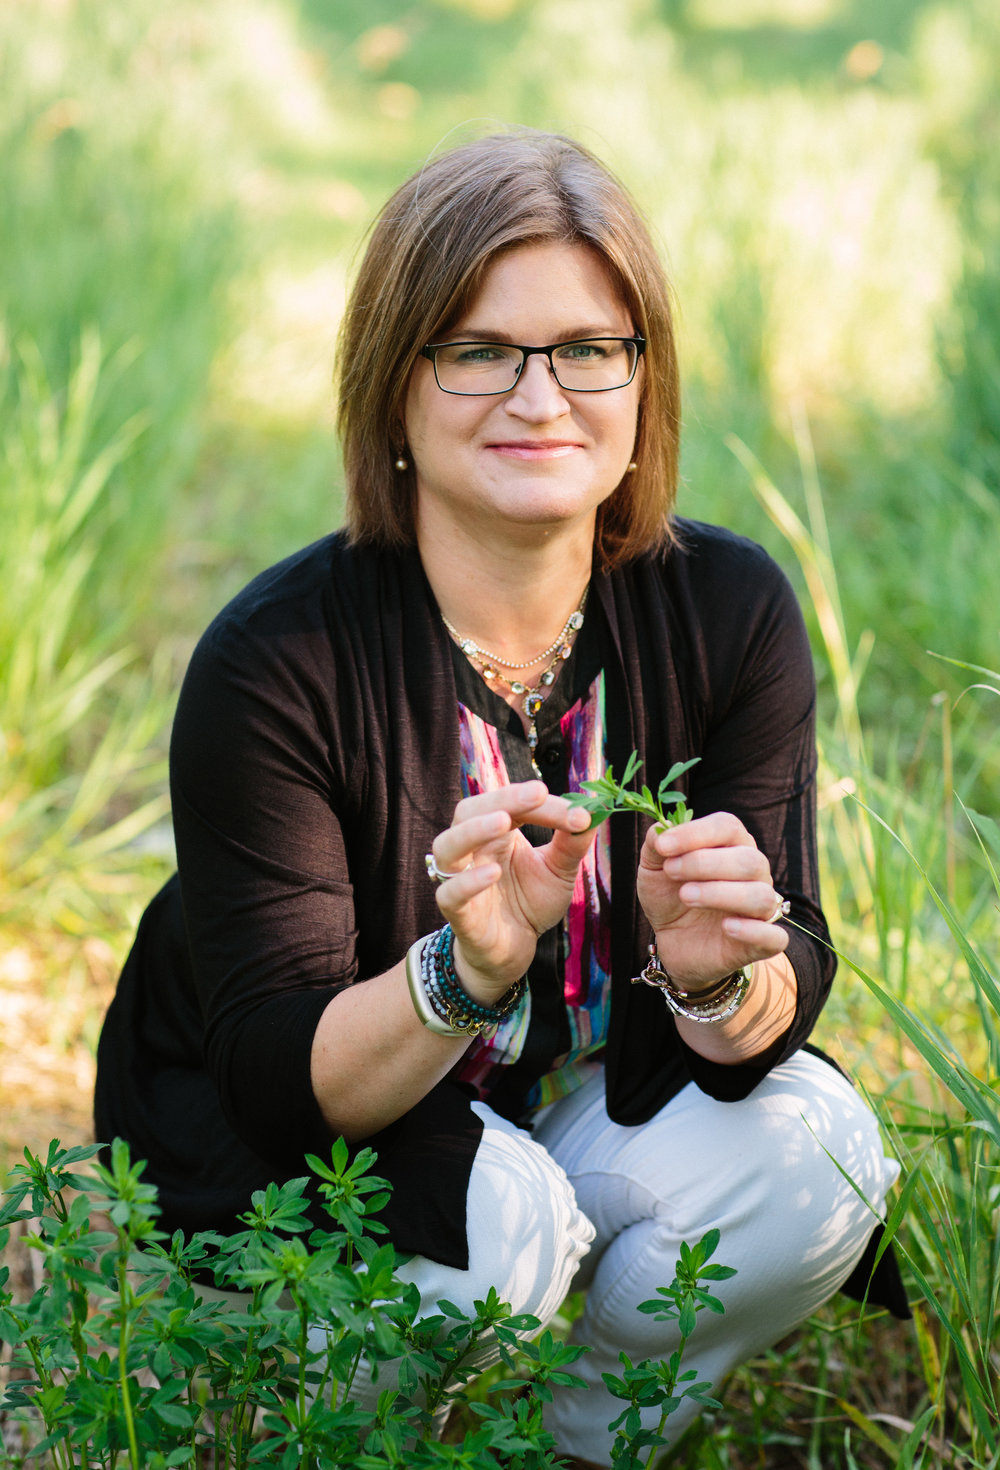 lisa-akers-herbalist-and-spaceship-builder